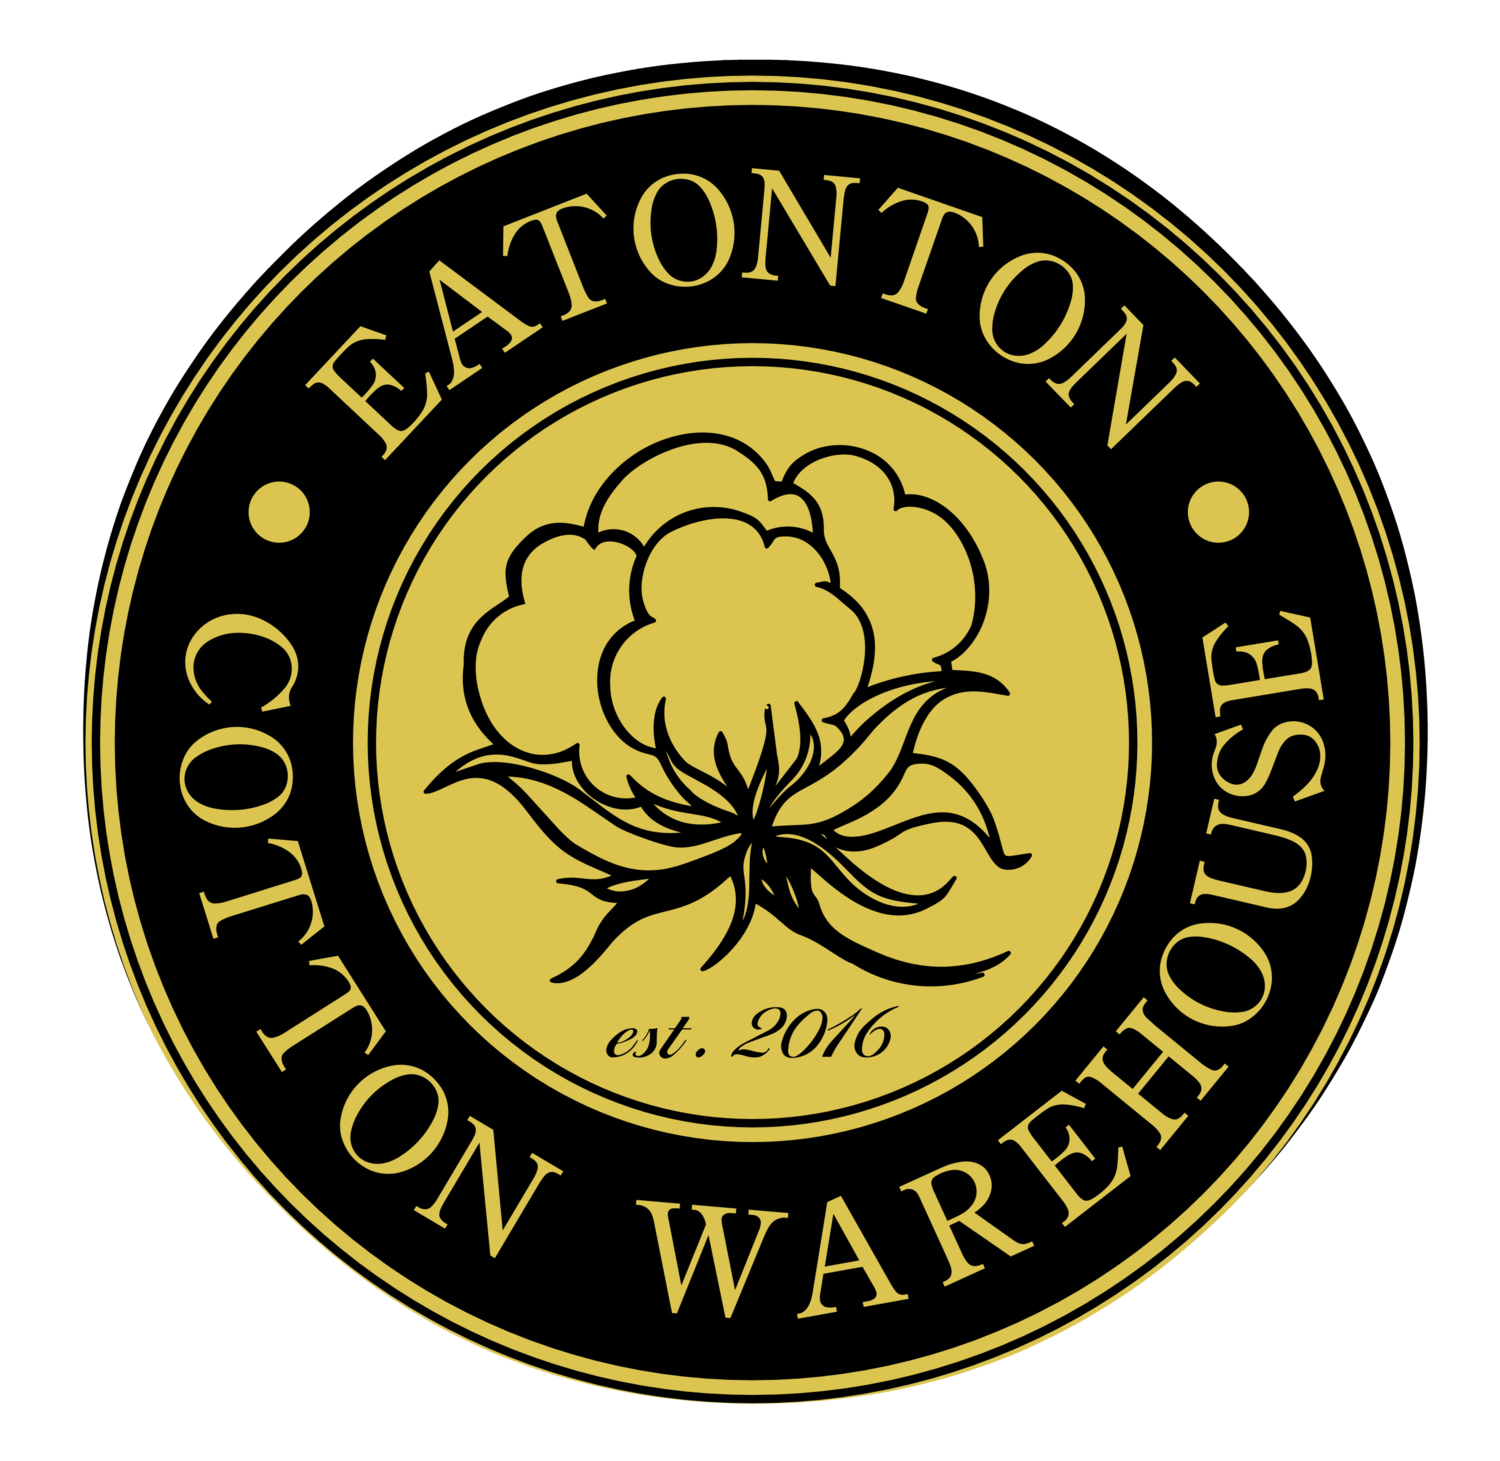 Eatonton Cotton Warehouse